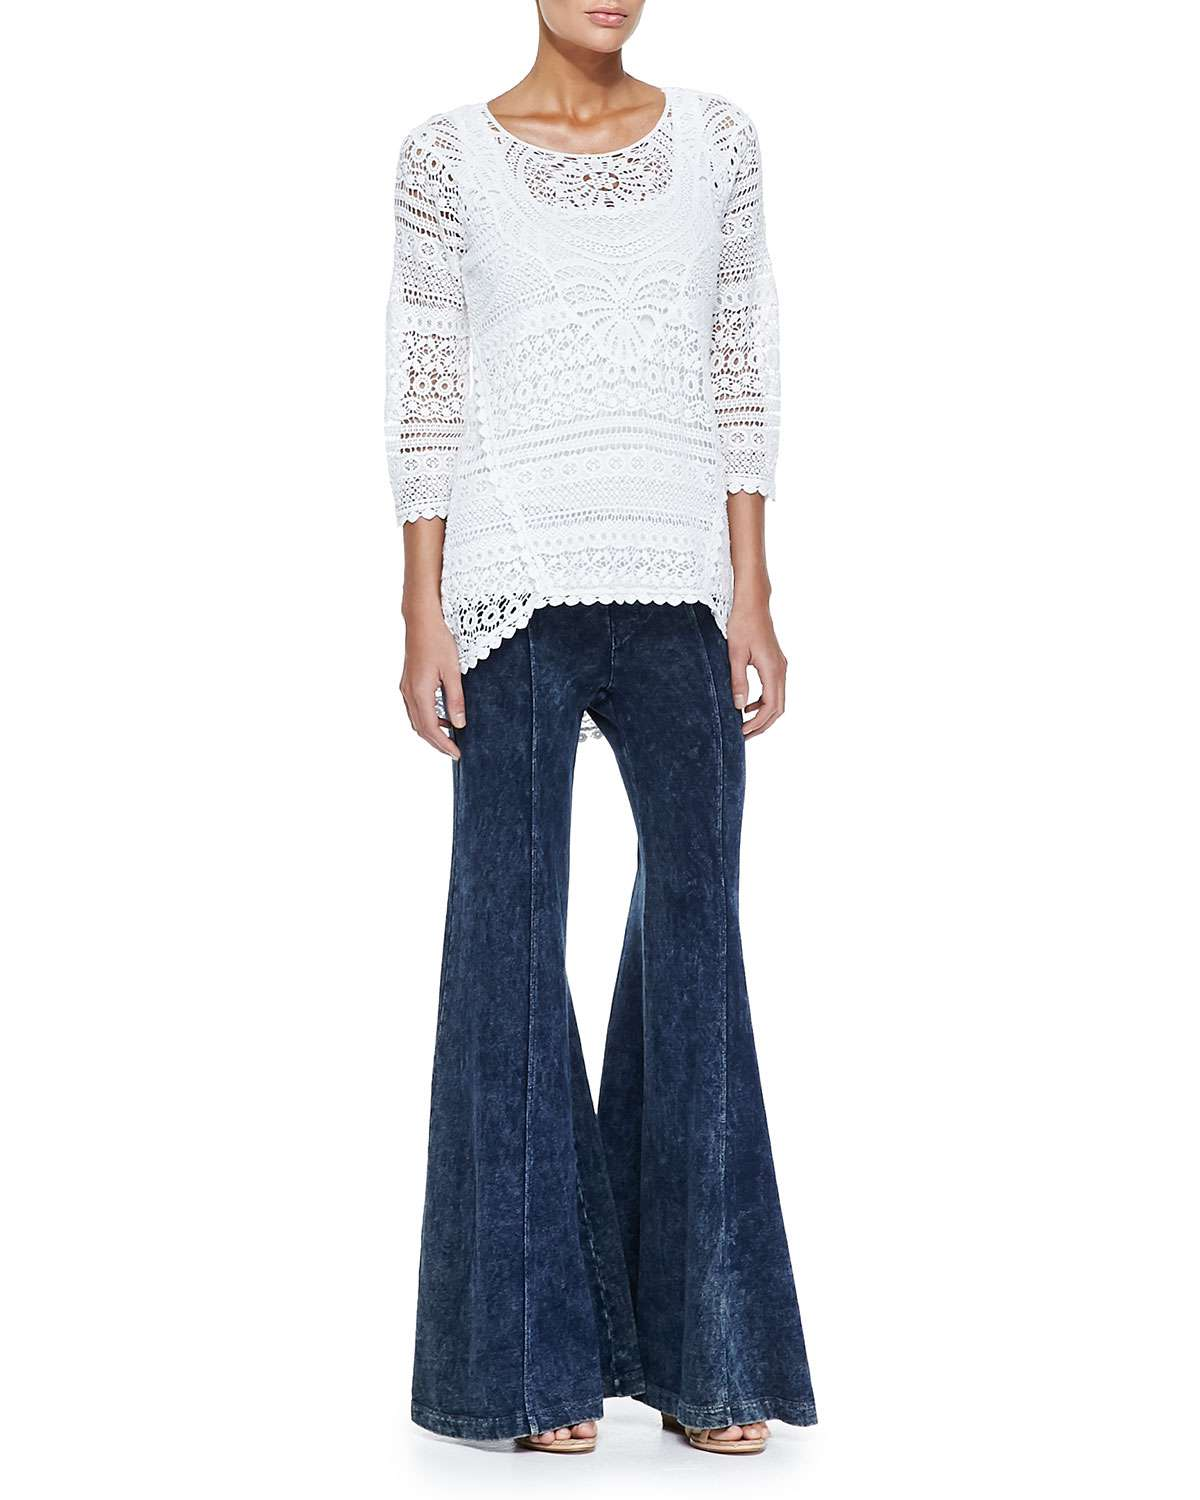 Delaney Crochet 3/4-Sleeve Top, Slim Cotton Tank & French Terry Wide-Leg Pants